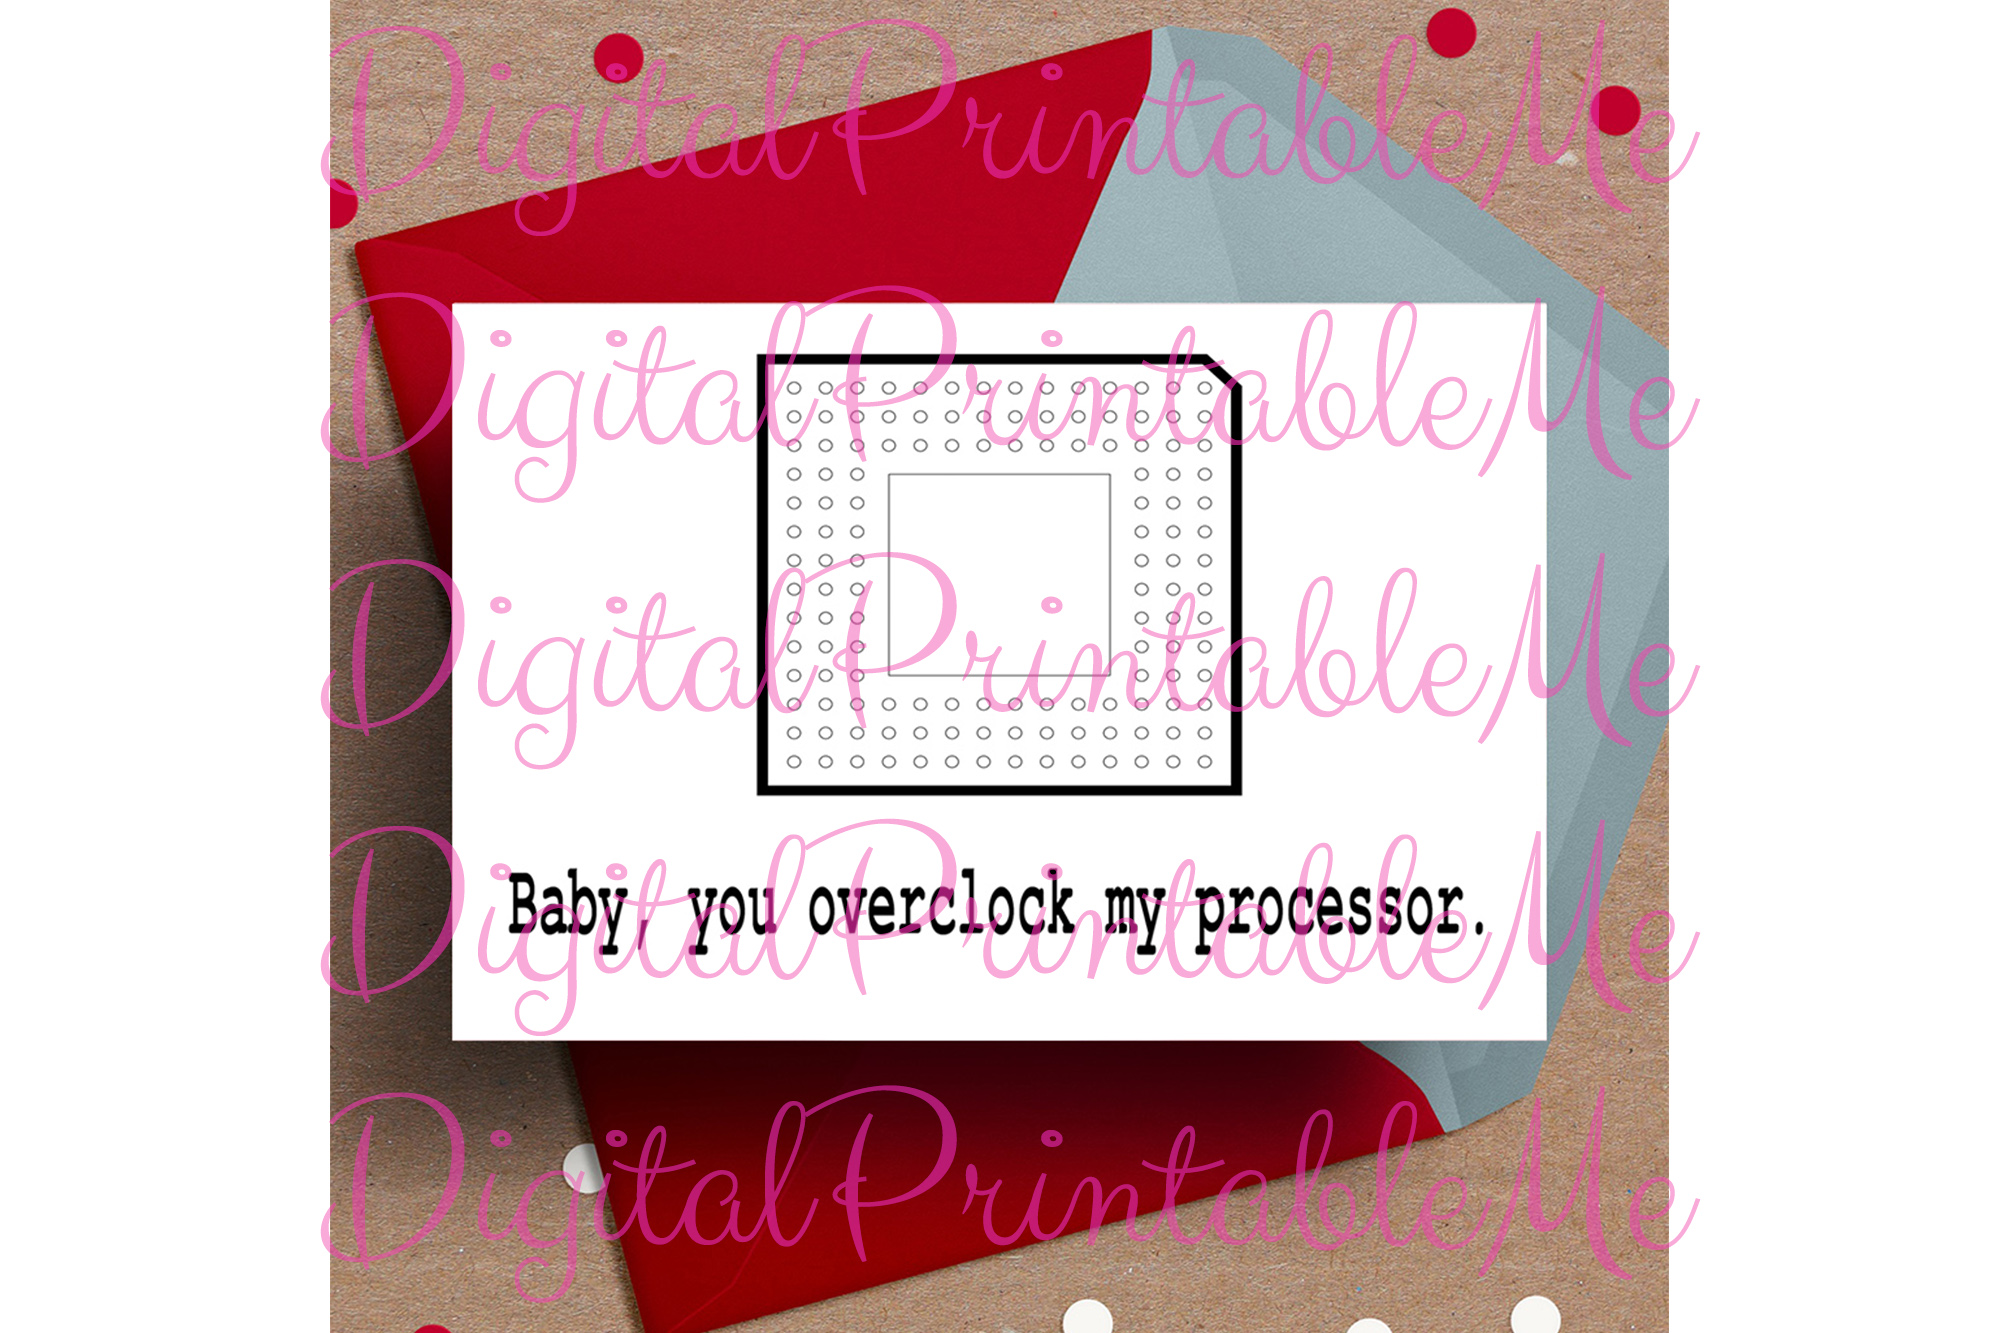 photograph relating to Funny Printable Valentines Cards titled Printable Valentines working day card Youngster yourself overclock my